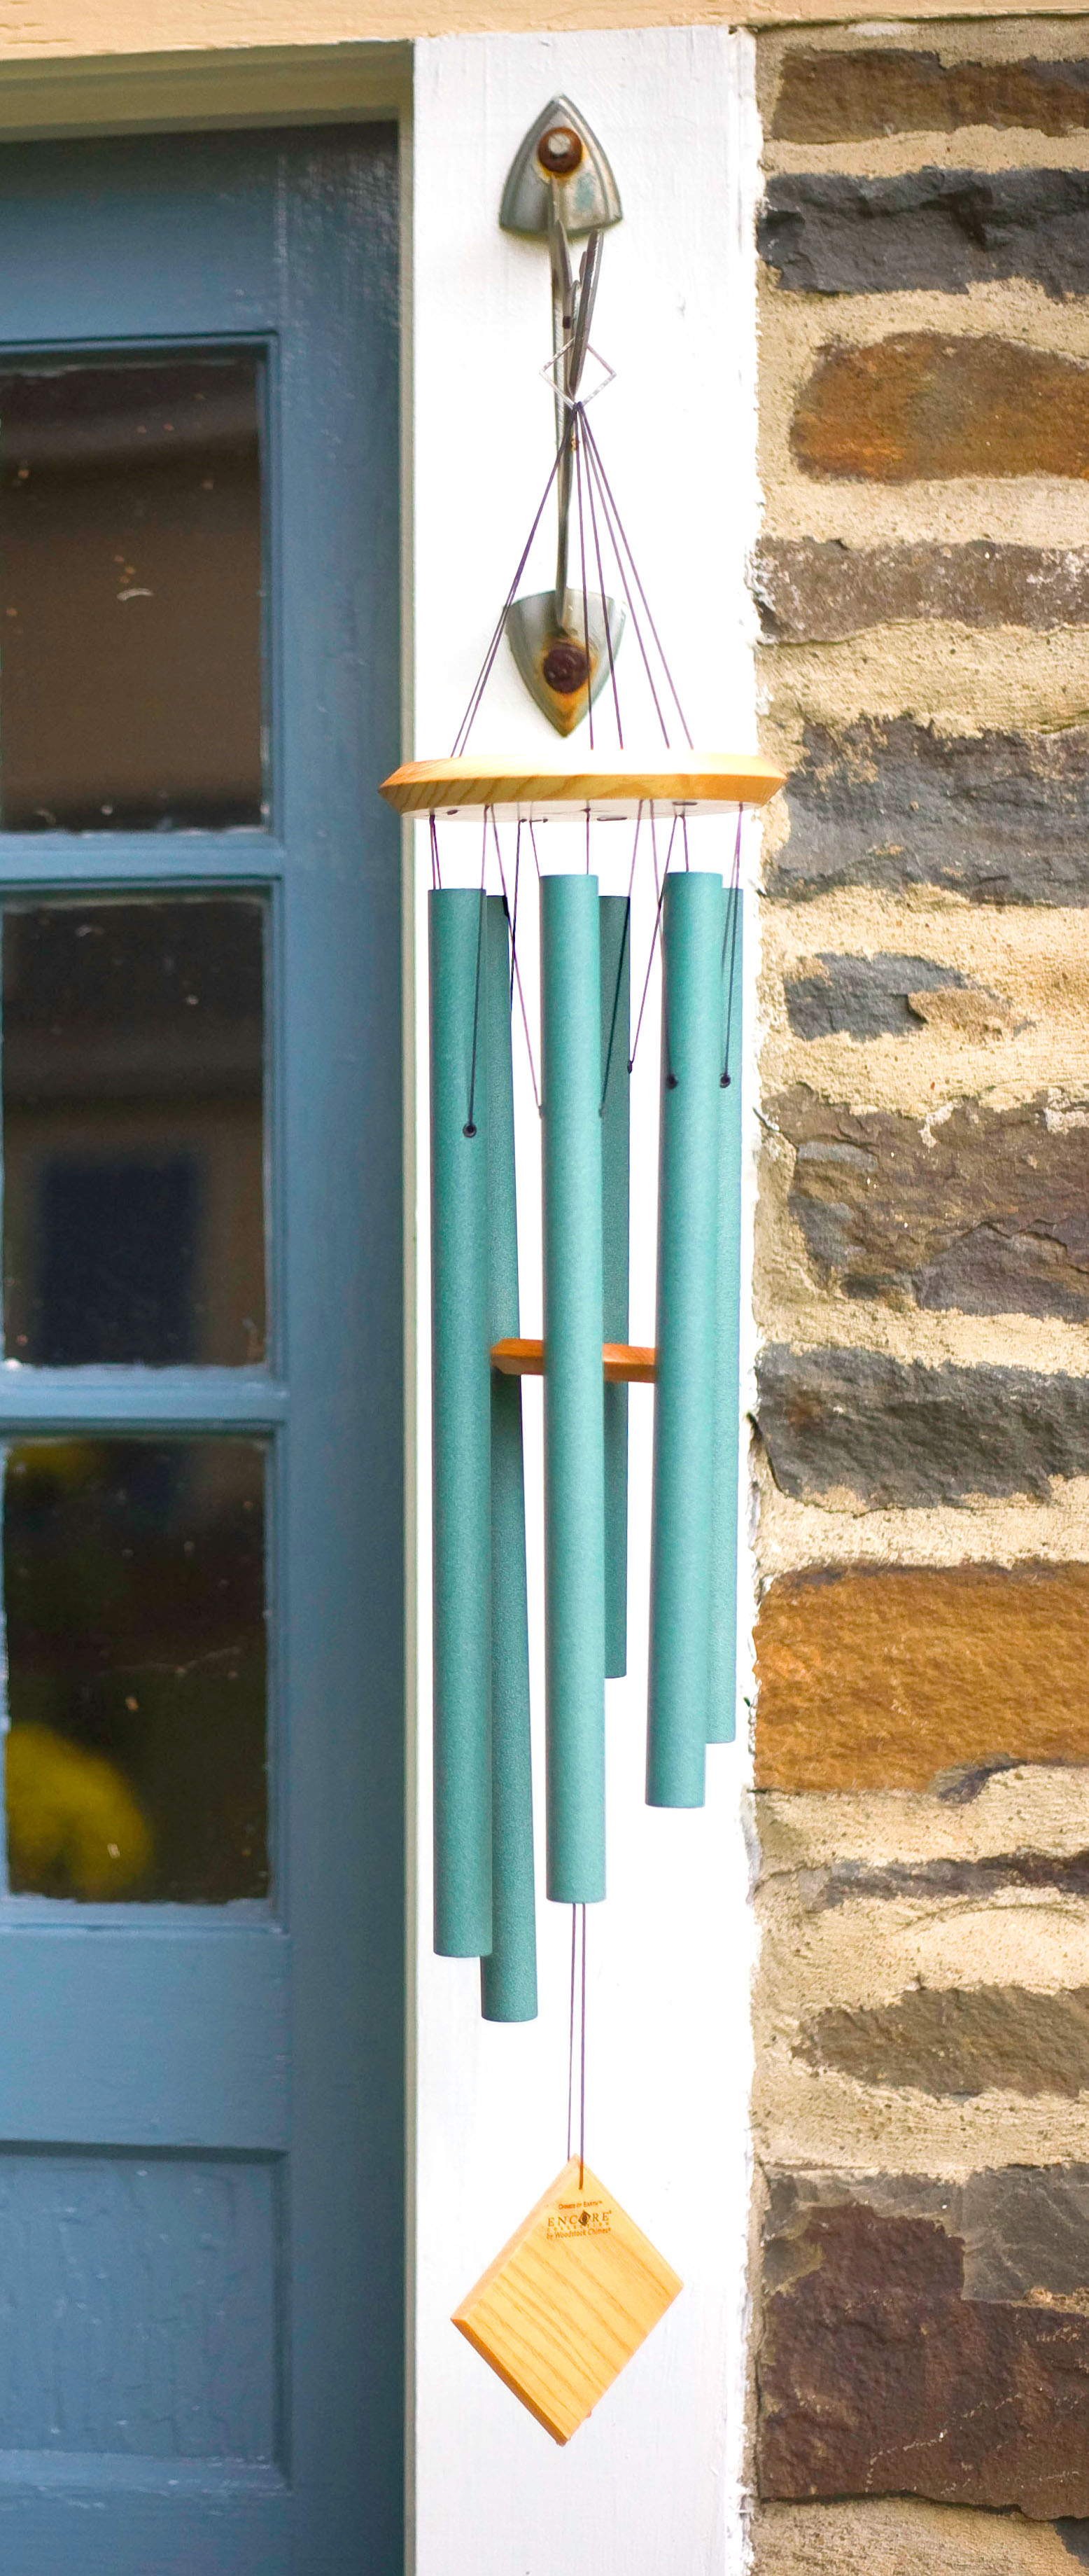 Decorative Outdoor Garden Earth Wind Chime